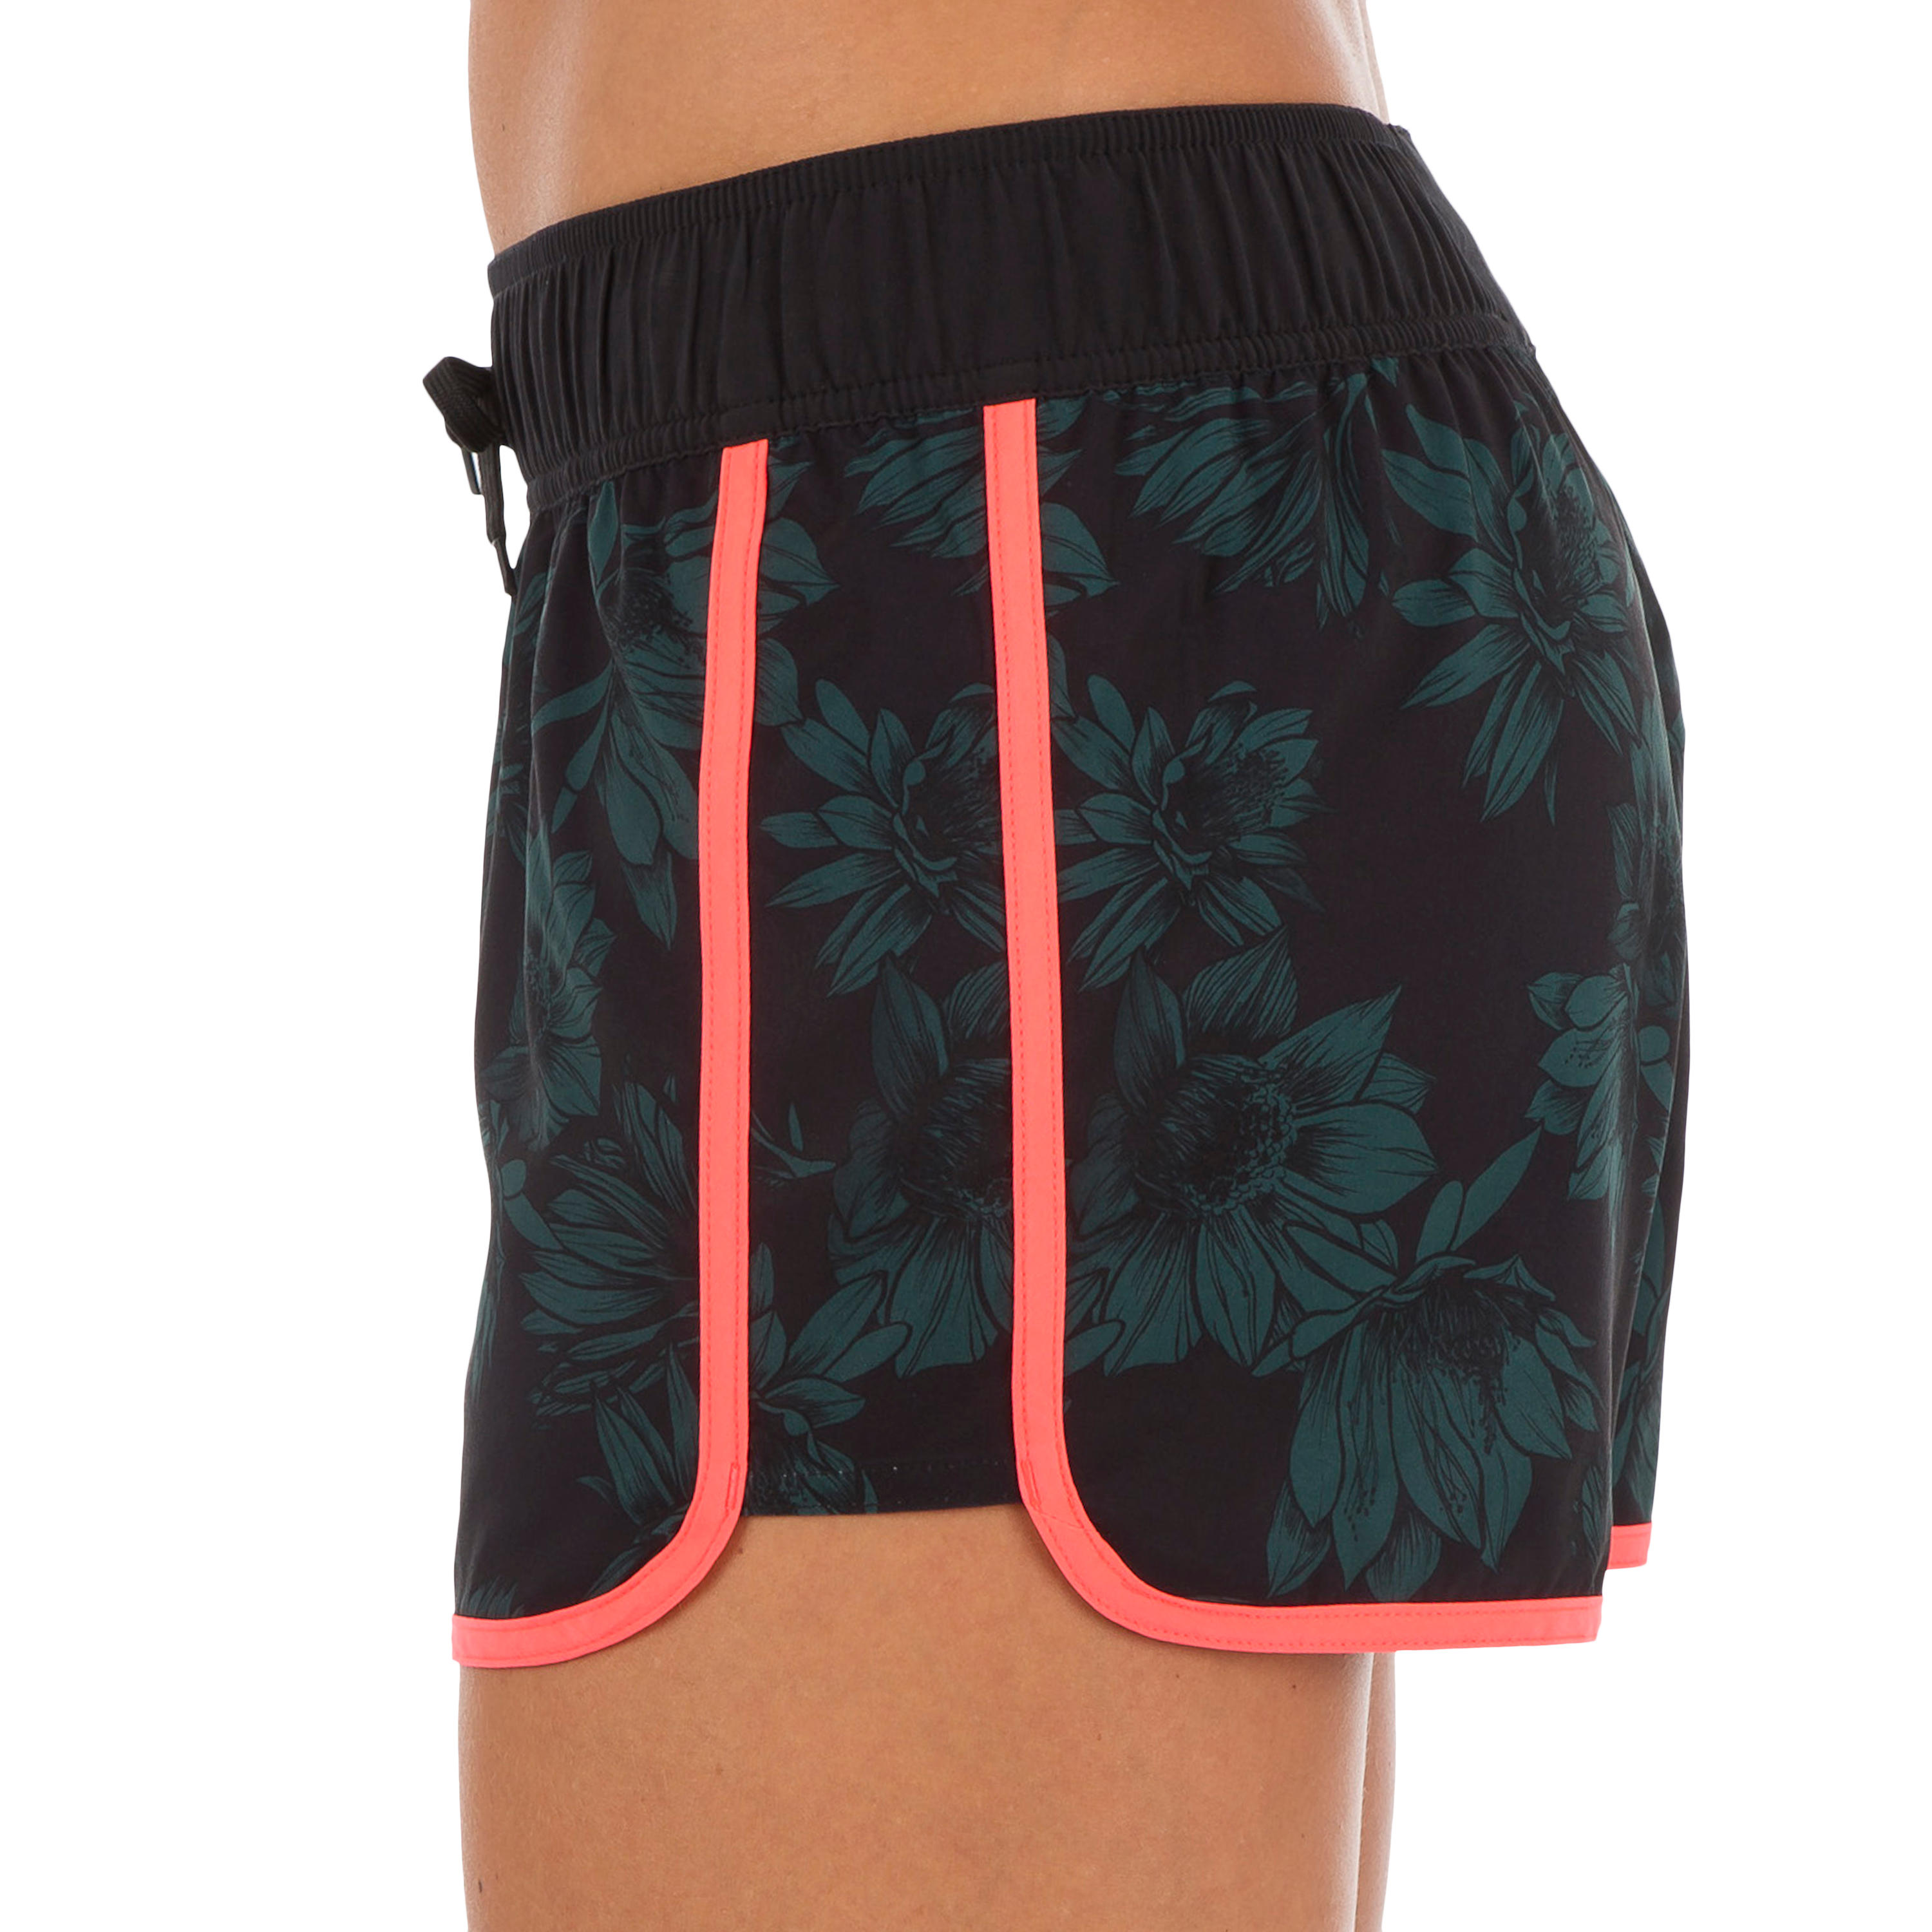 Tini Women's Boardshorts with Elasticated Waistband and Drawstring - Terra